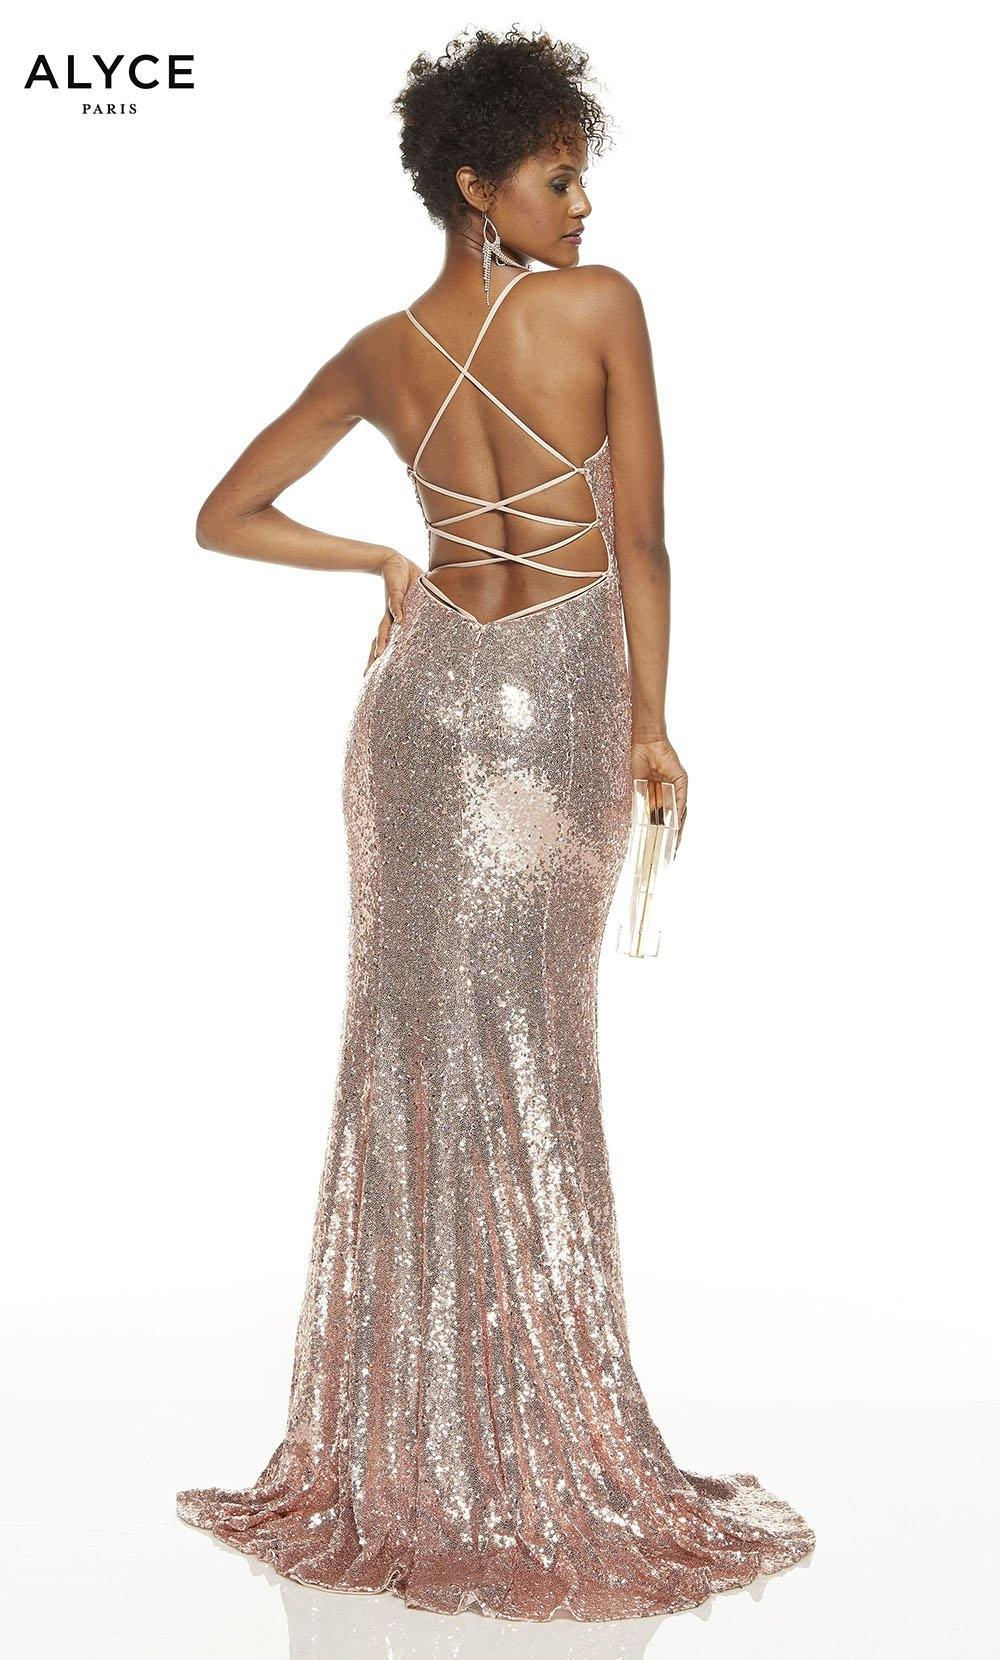 Rose Gold sequin prom dress with a strappy back and a train